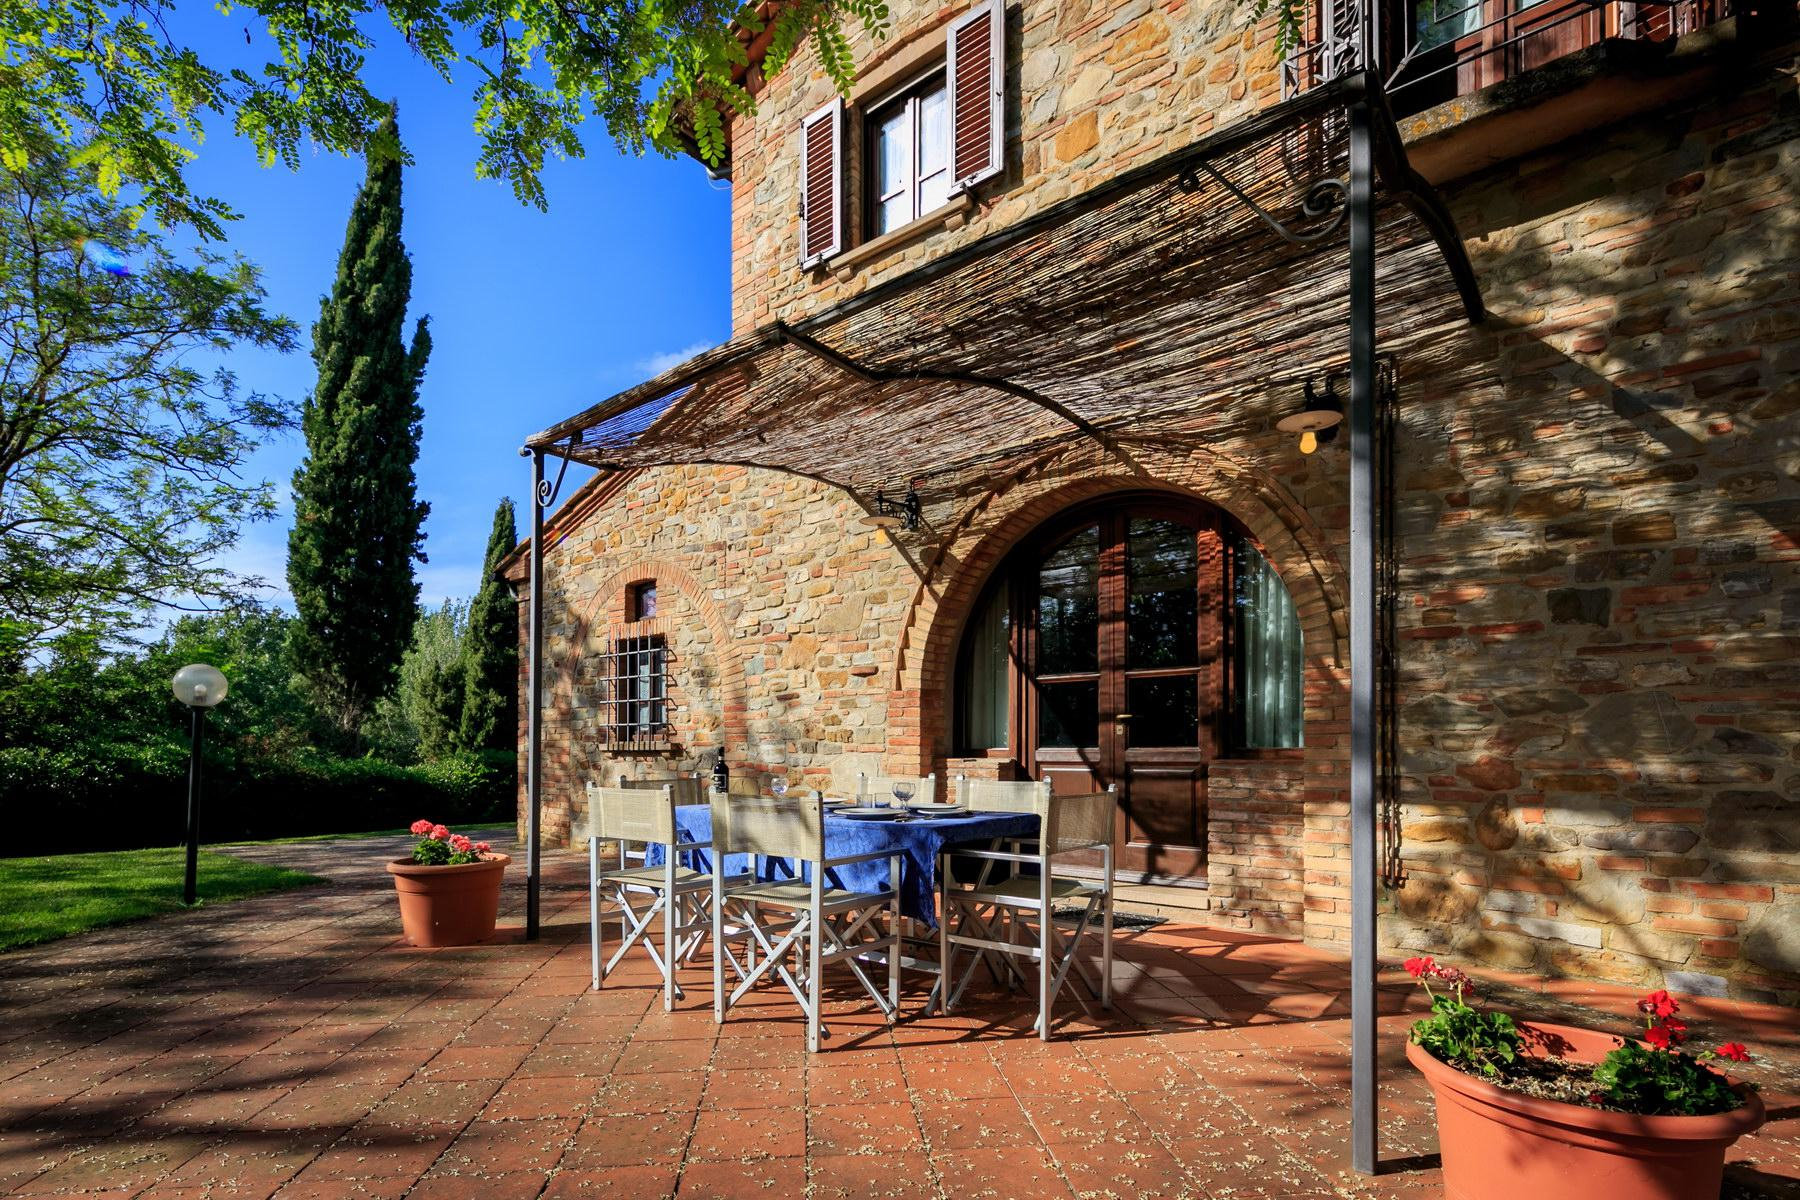 Wonderful countryhouse in the tuscan countryside - 12